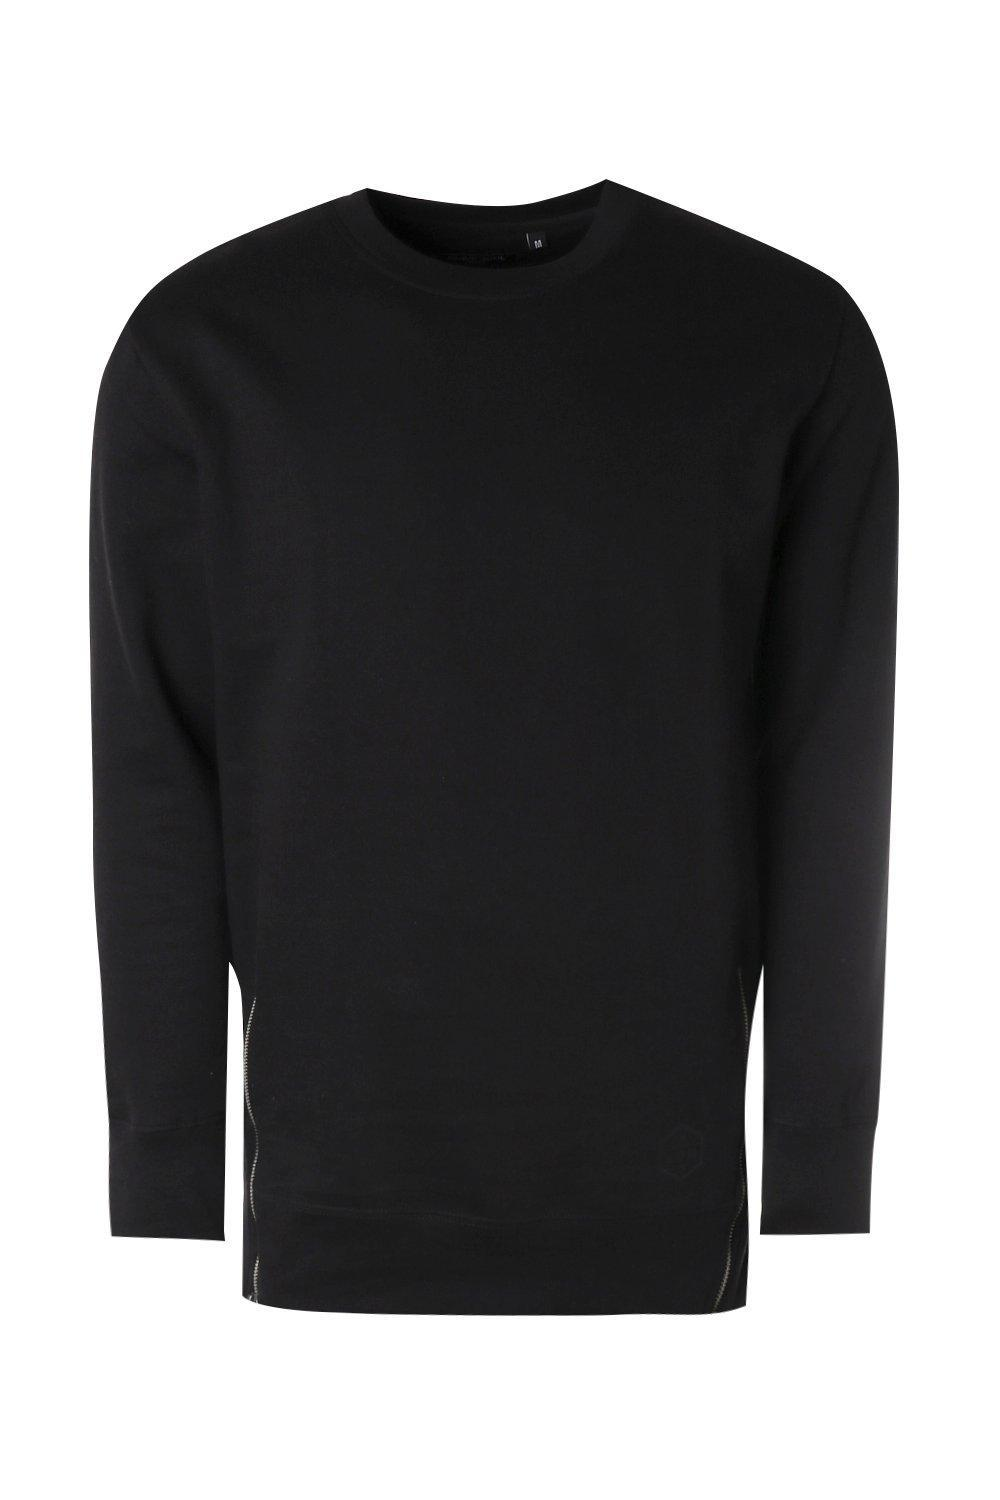 Boohoo Cotton Longline Sweater With Zip Detail in Black for Men